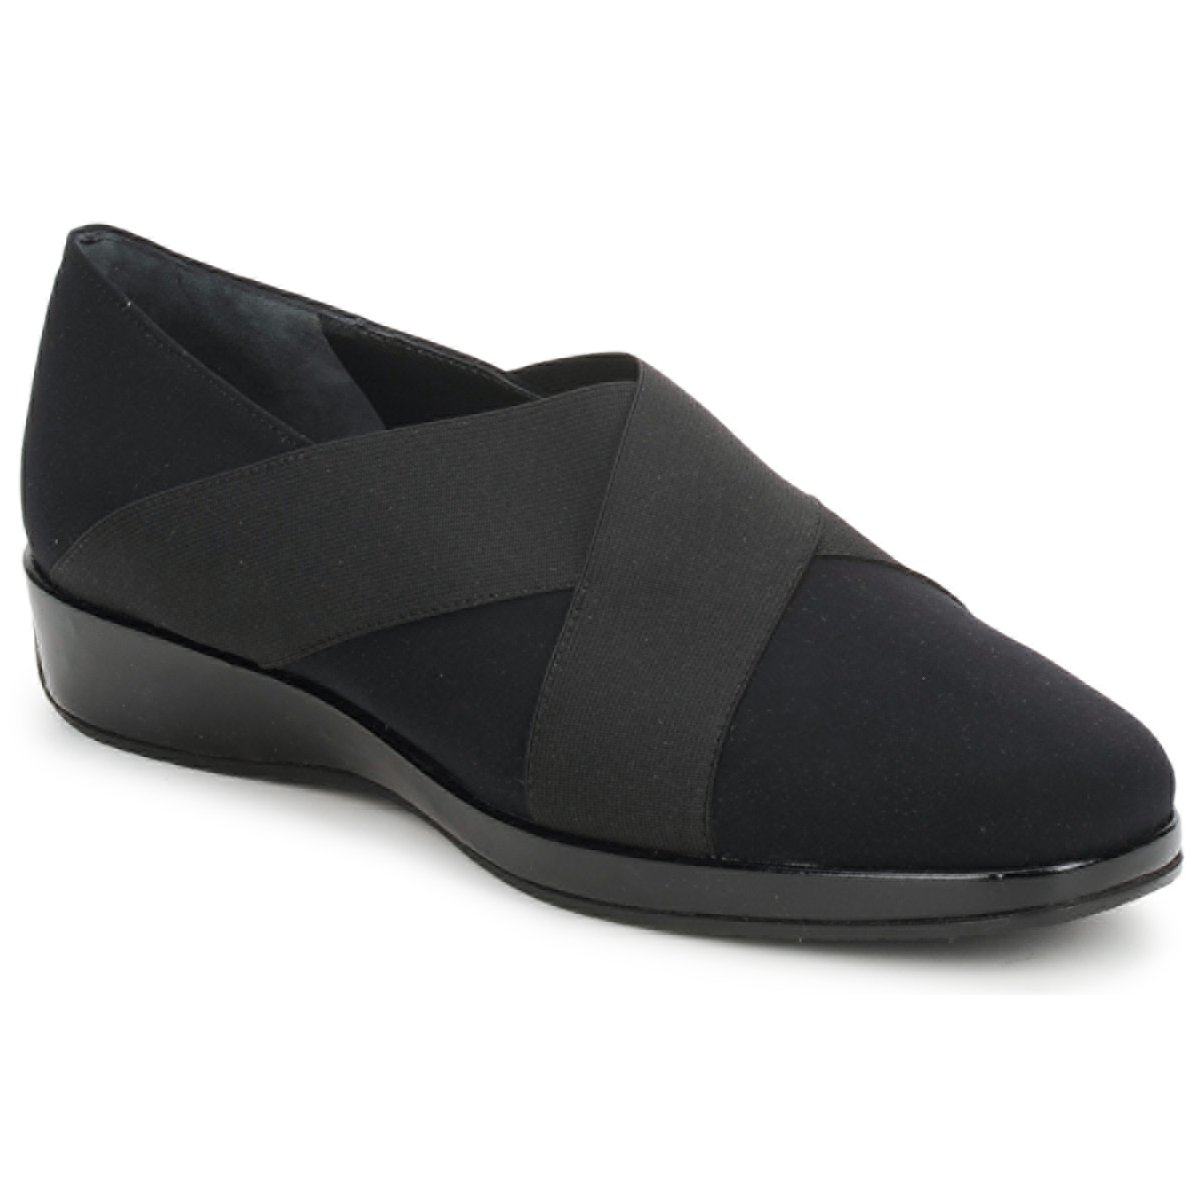 Smart-shoes Amalfi by Rangoni PRETTY Black